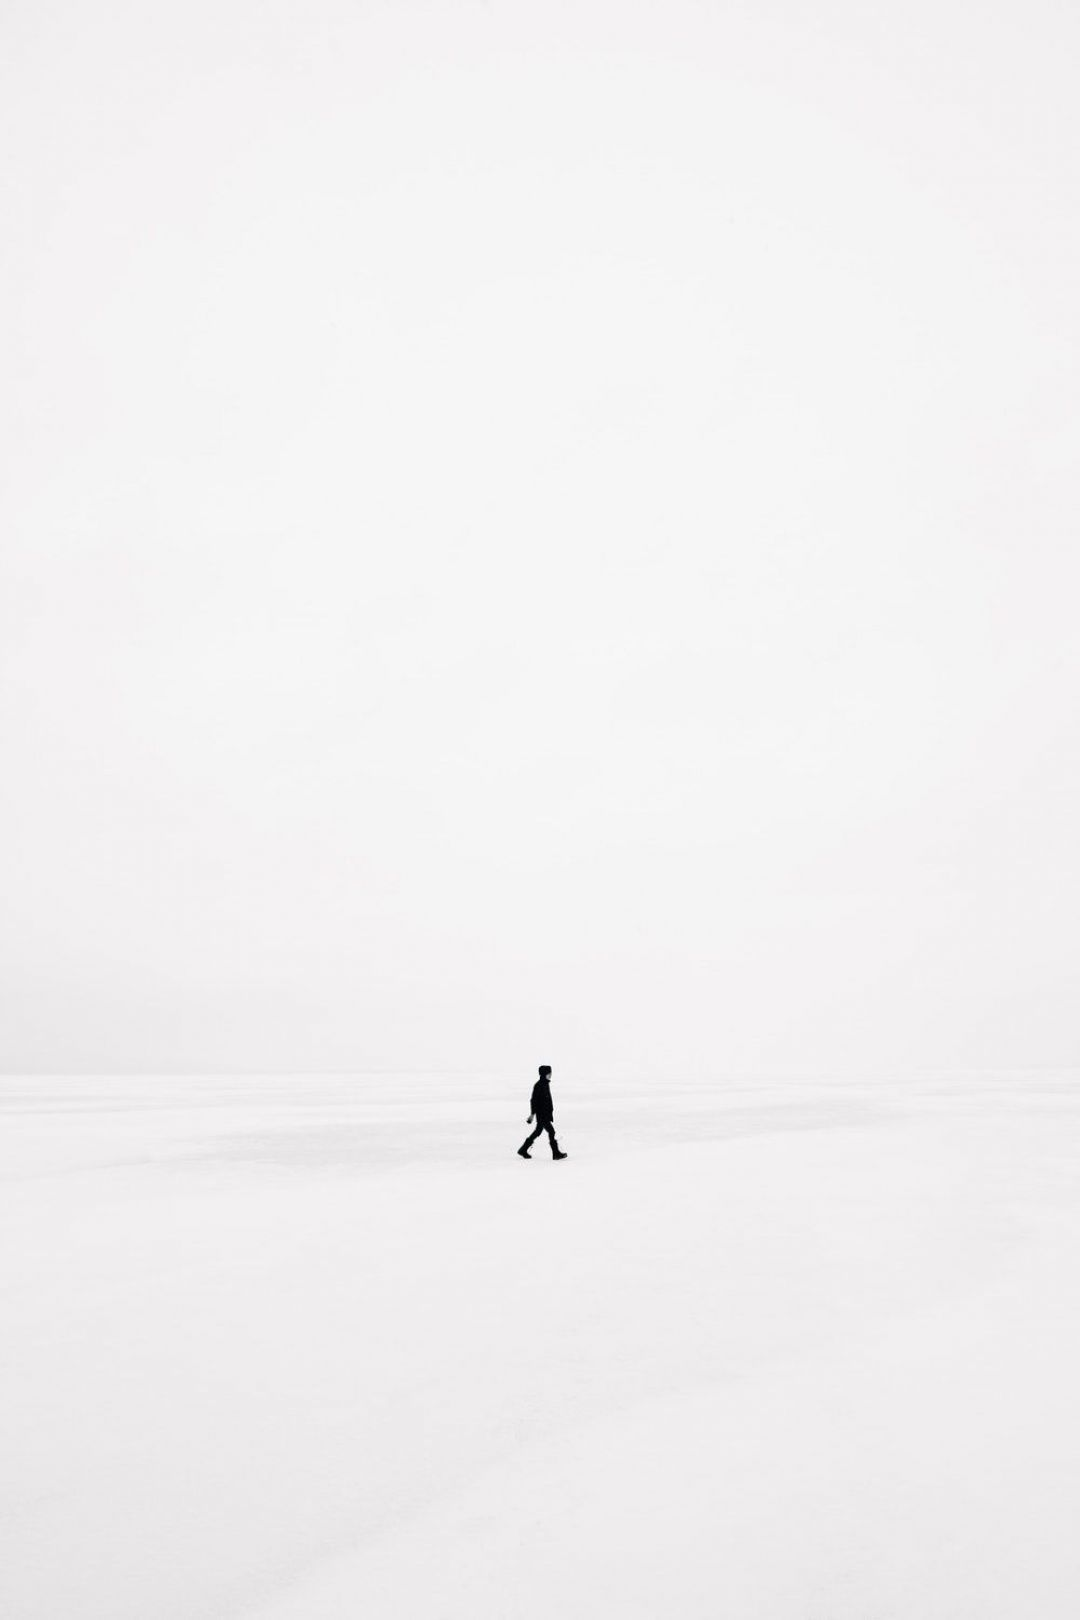 250 Minimalist Aesthetic Android Iphone Desktop Hd Backgrounds Wallpapers 1080p 4k 1080x1620 2021